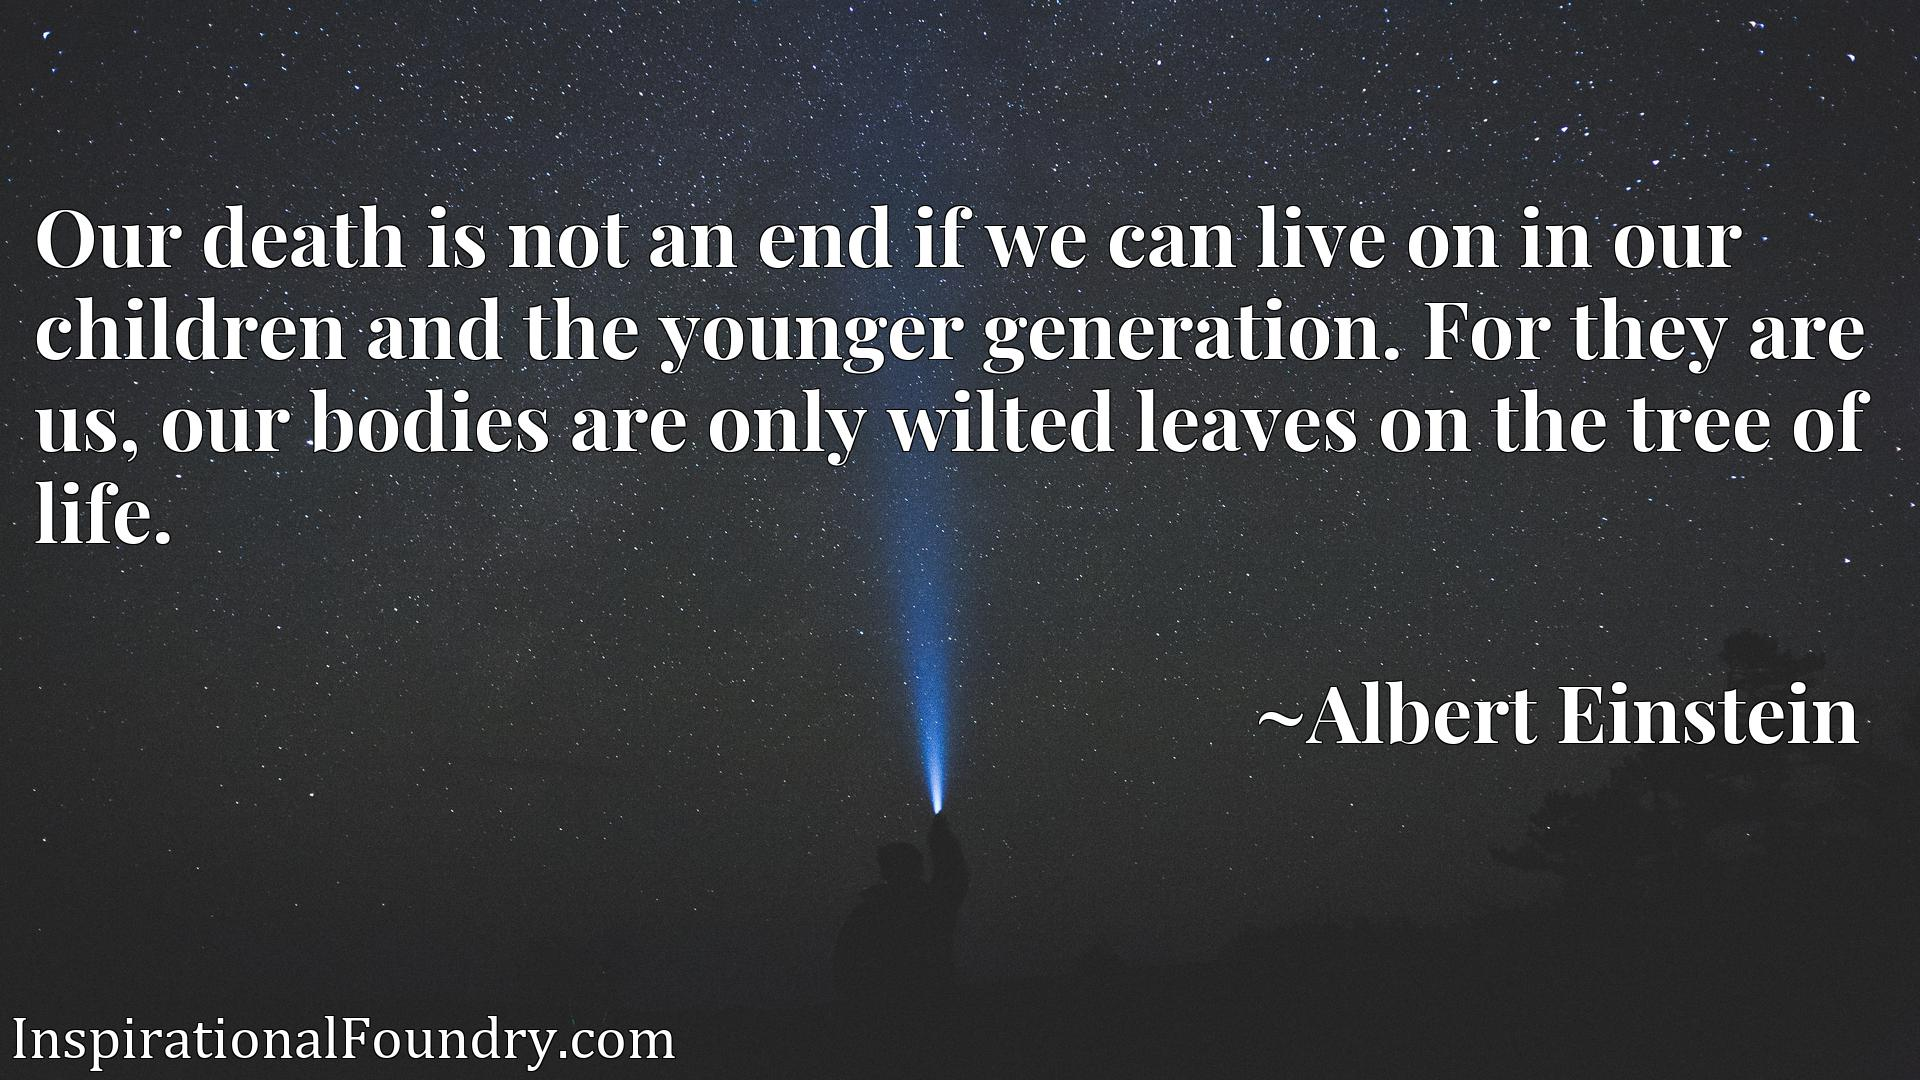 Our death is not an end if we can live on in our children and the younger generation. For they are us, our bodies are only wilted leaves on the tree of life.